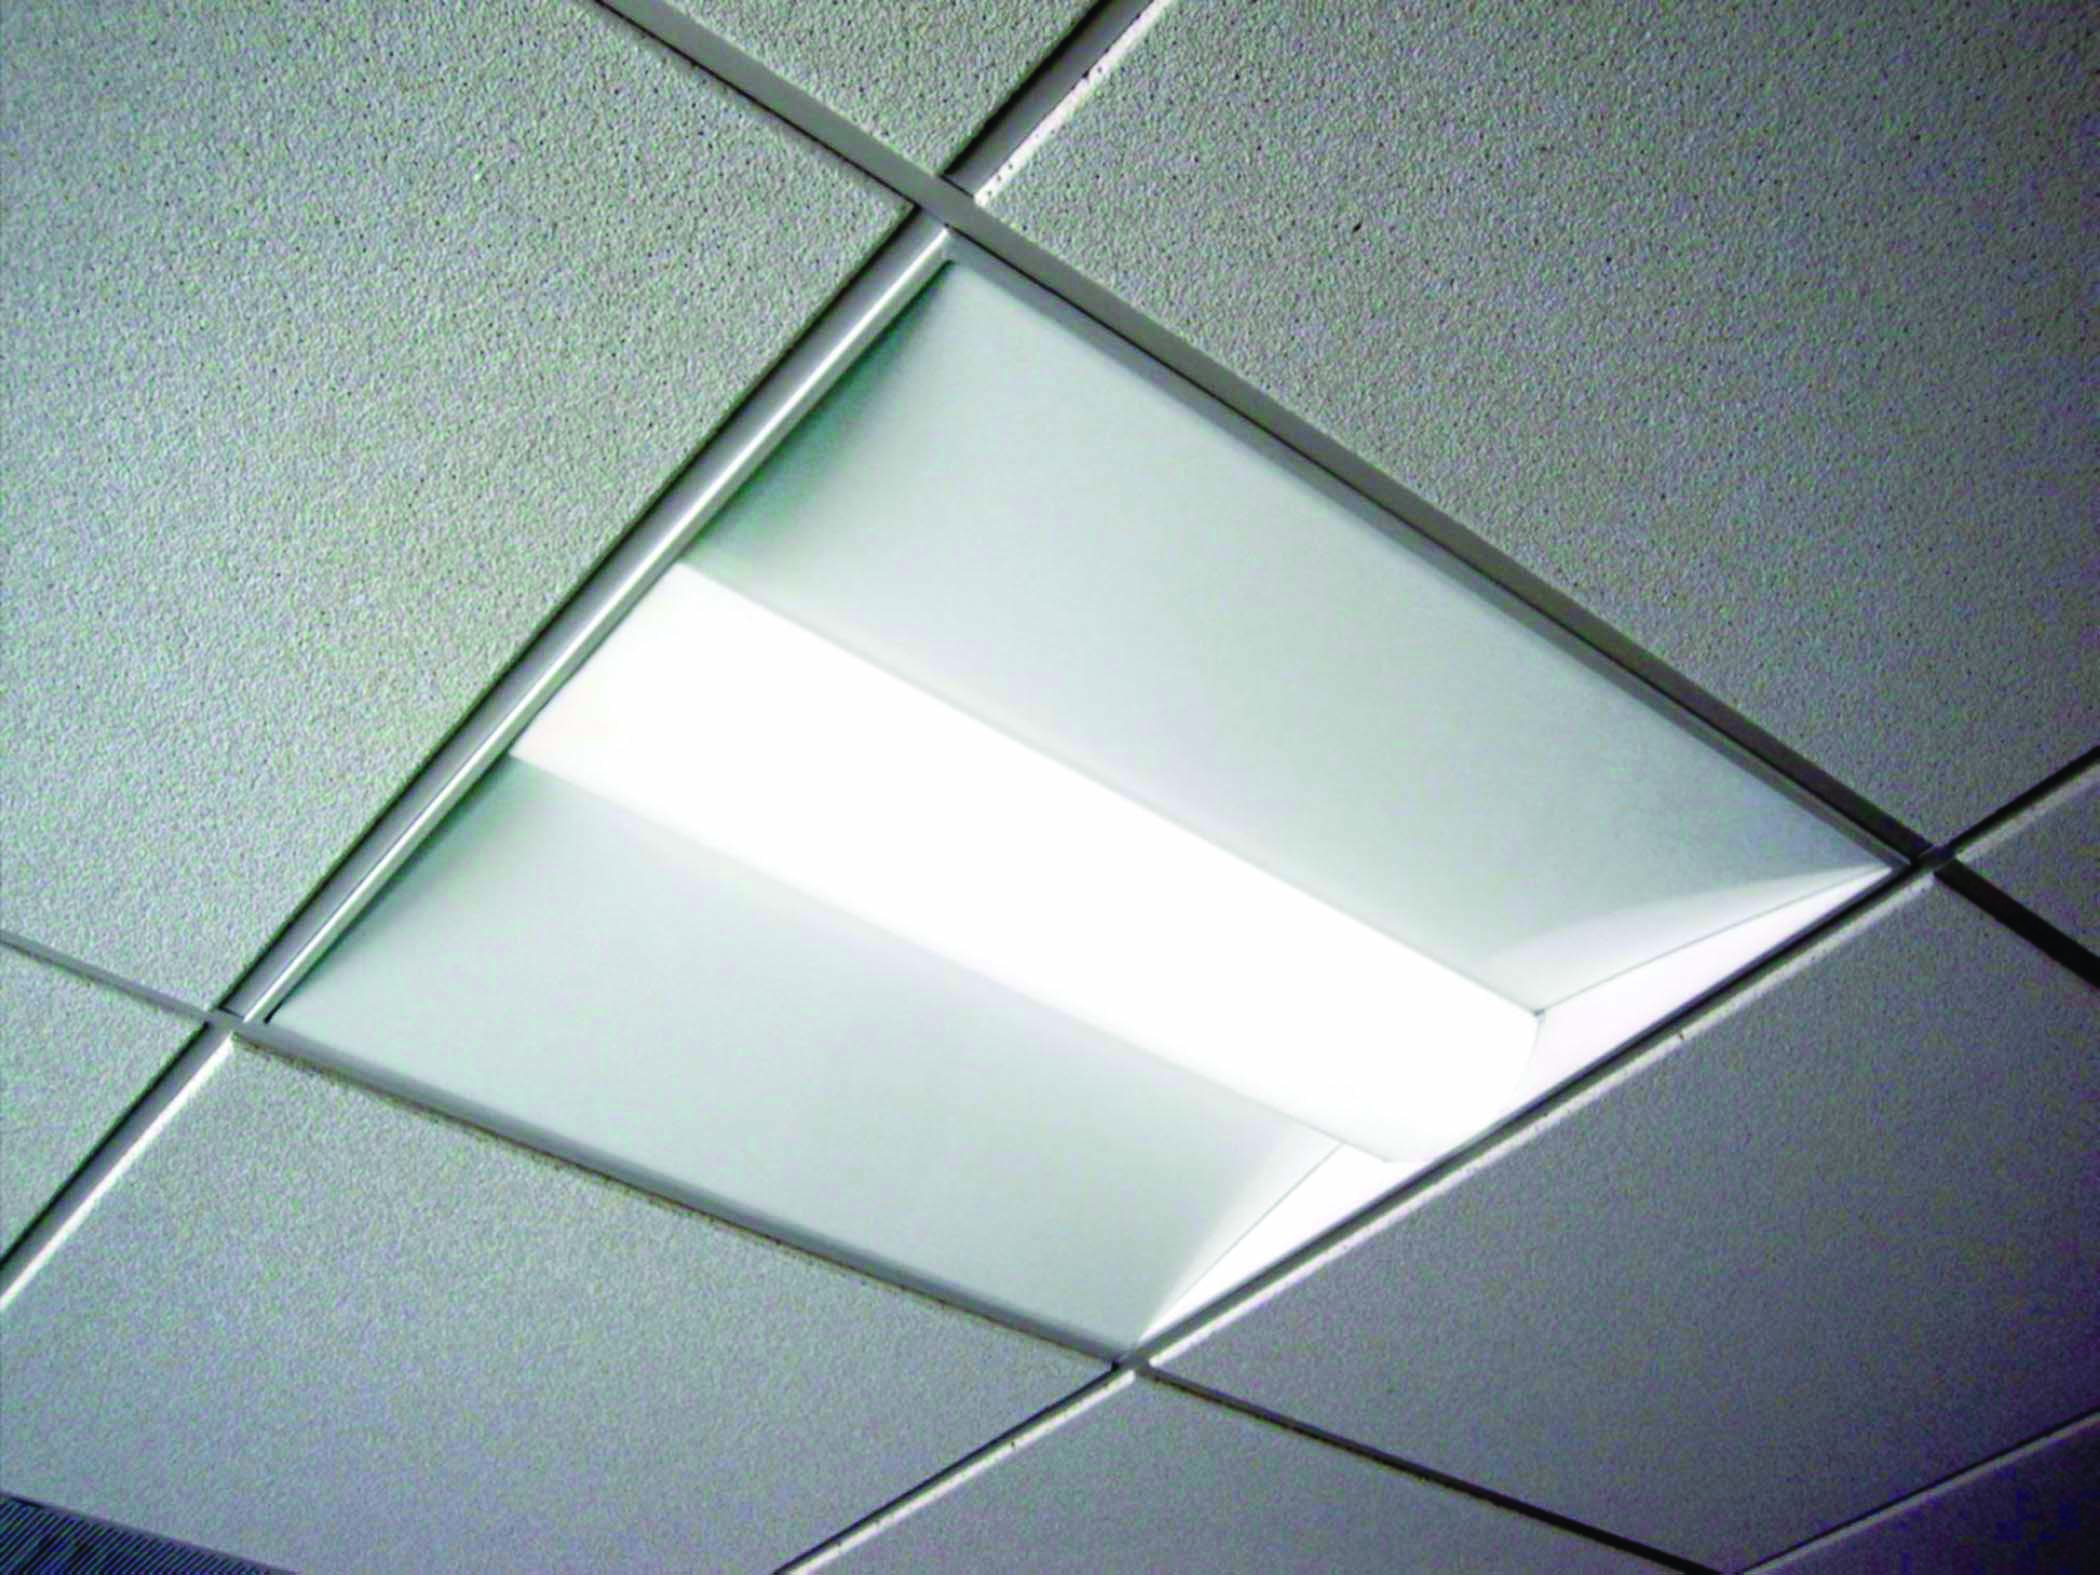 Drop ceiling tiles 2x4 finest armstrong ceilings common in x in good lights for suspended ceiling grid designs with drop ceiling tiles 2x4 dailygadgetfo Choice Image